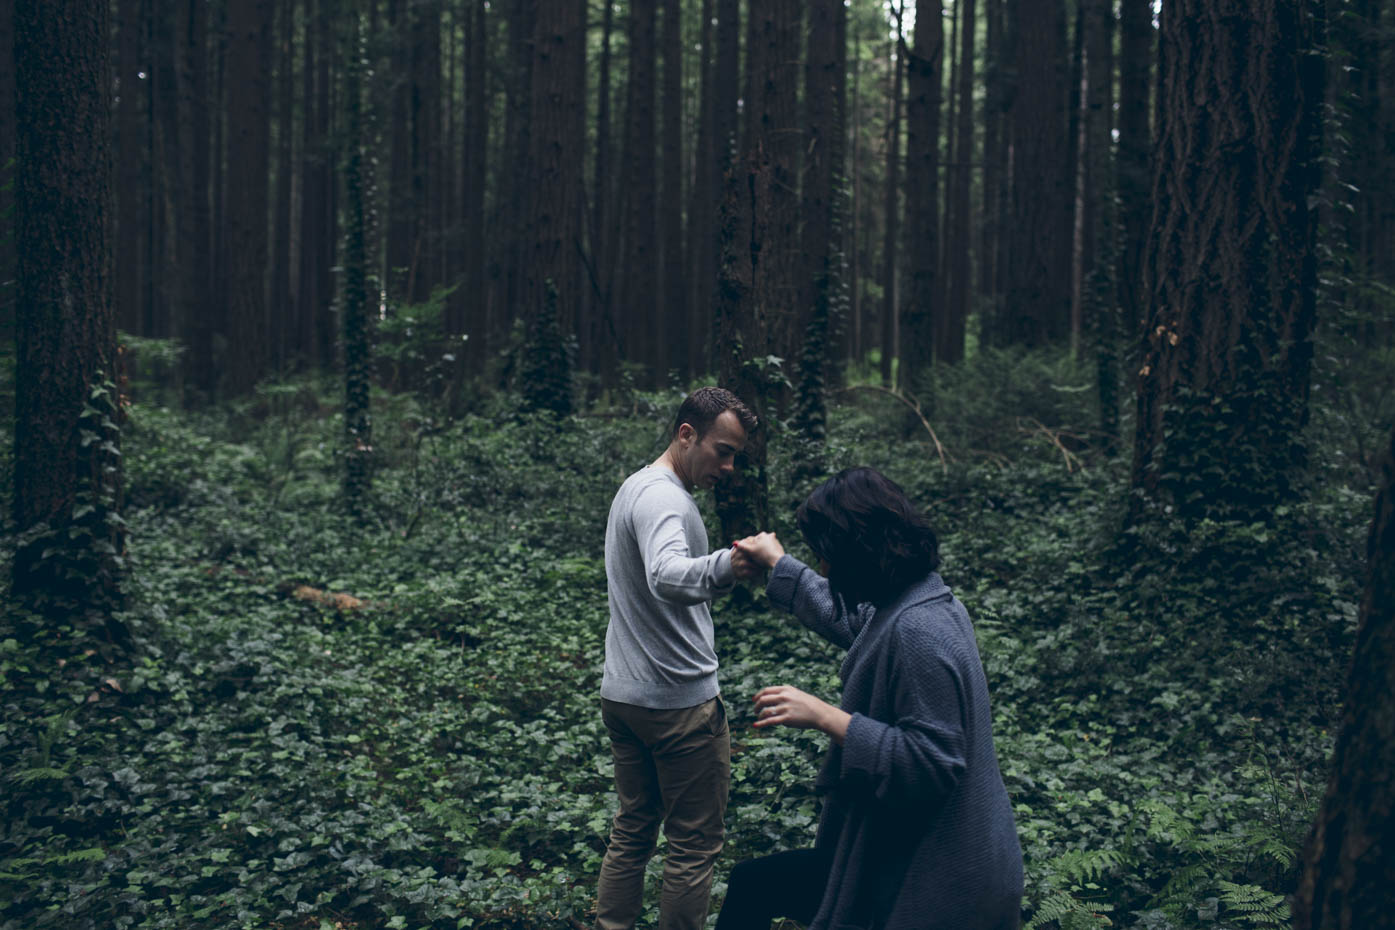 Couple walking through forest. UEL Vancouver